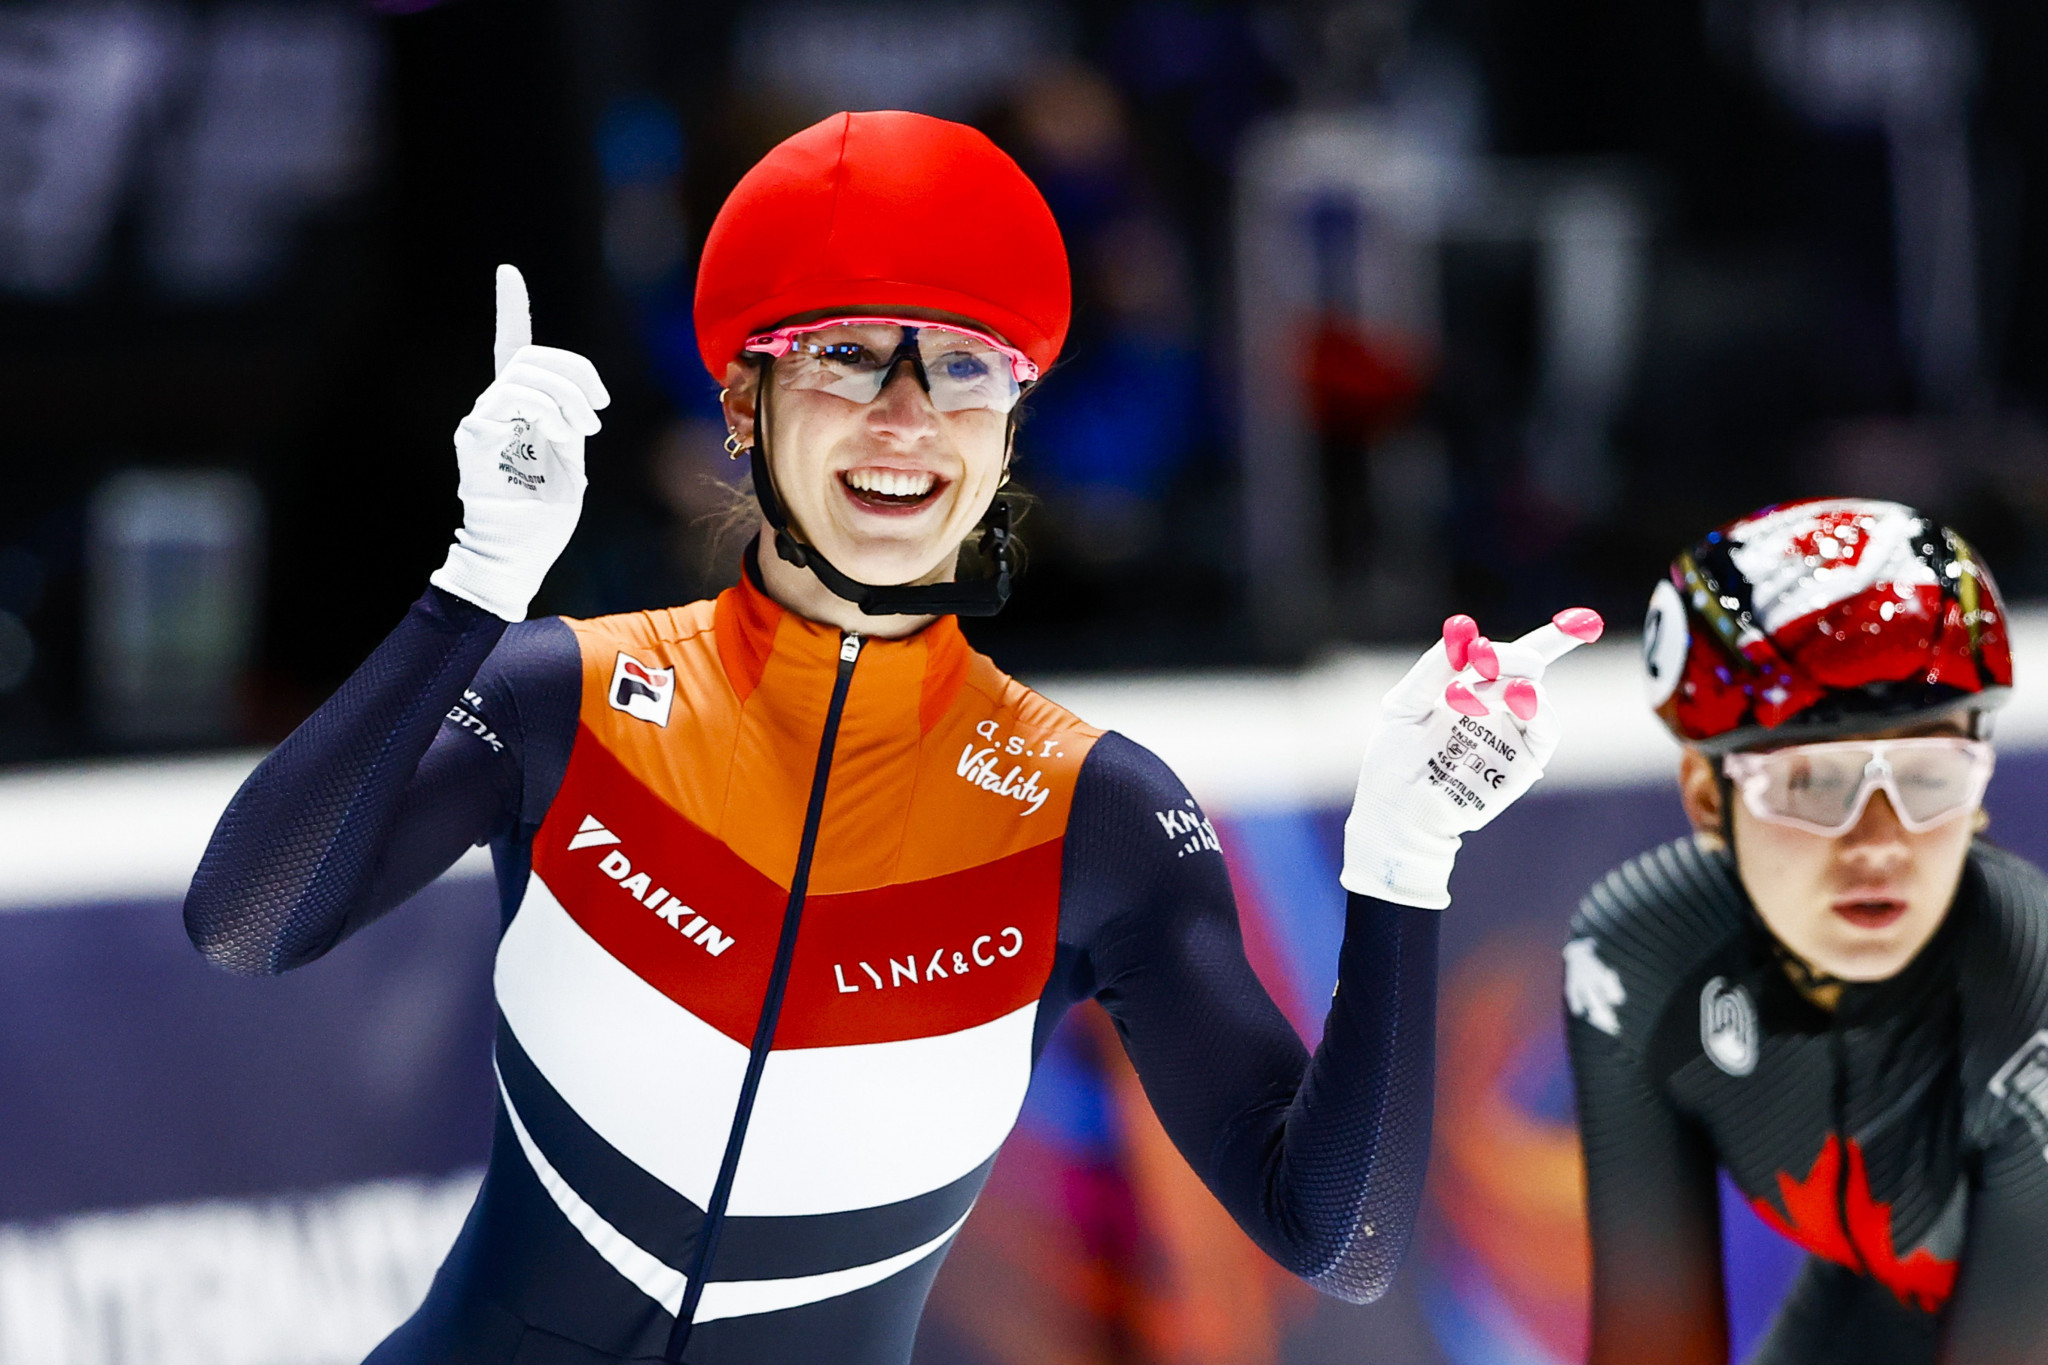 Schulting completes domination at World Short Track Speed Skating Championships